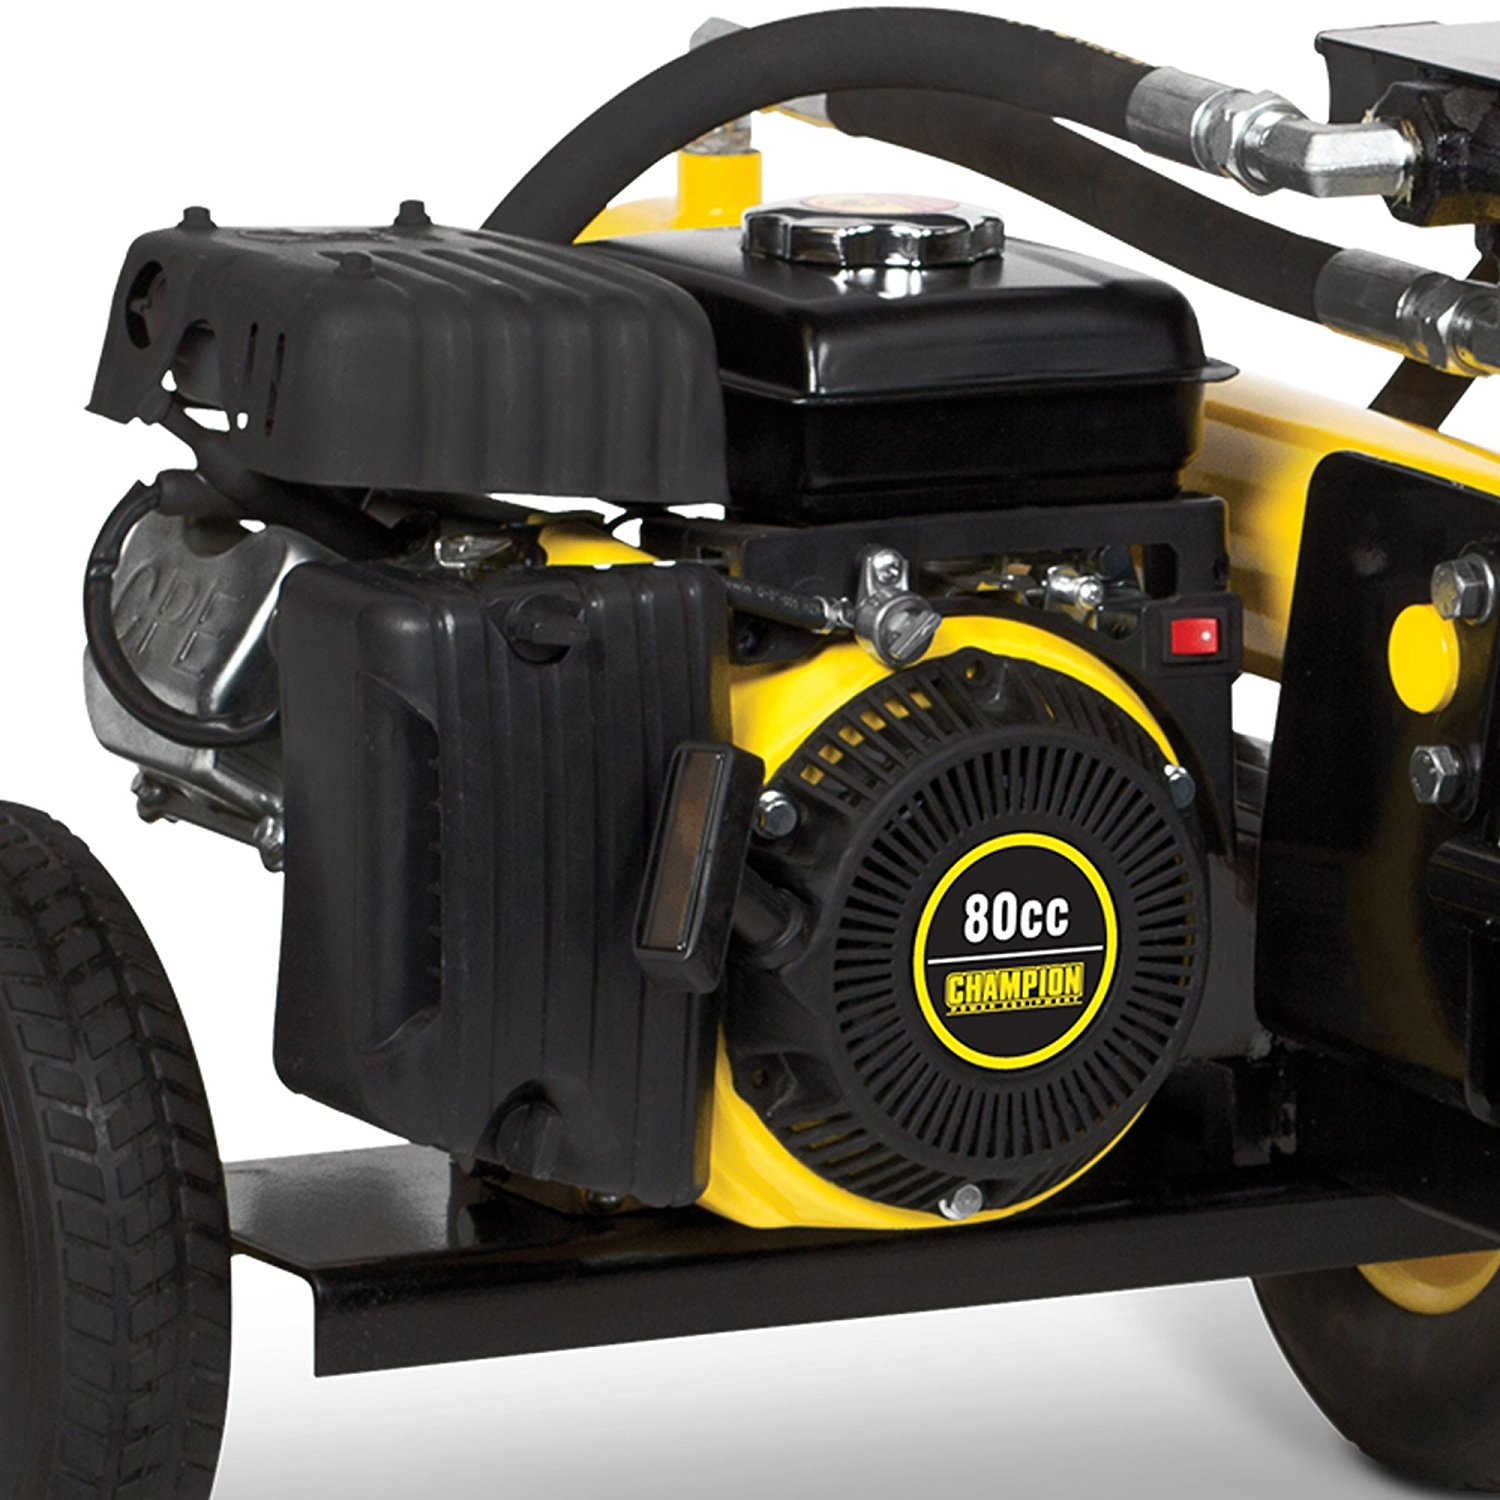 Interesting Ton Gas Powered Log Champion Thinking Buying A Log What You Should Know Harbor Freight Log Splitter Hydraulic Oil Harbor Freight Log Splitter Electric houzz-02 Harbor Freight Log Splitter